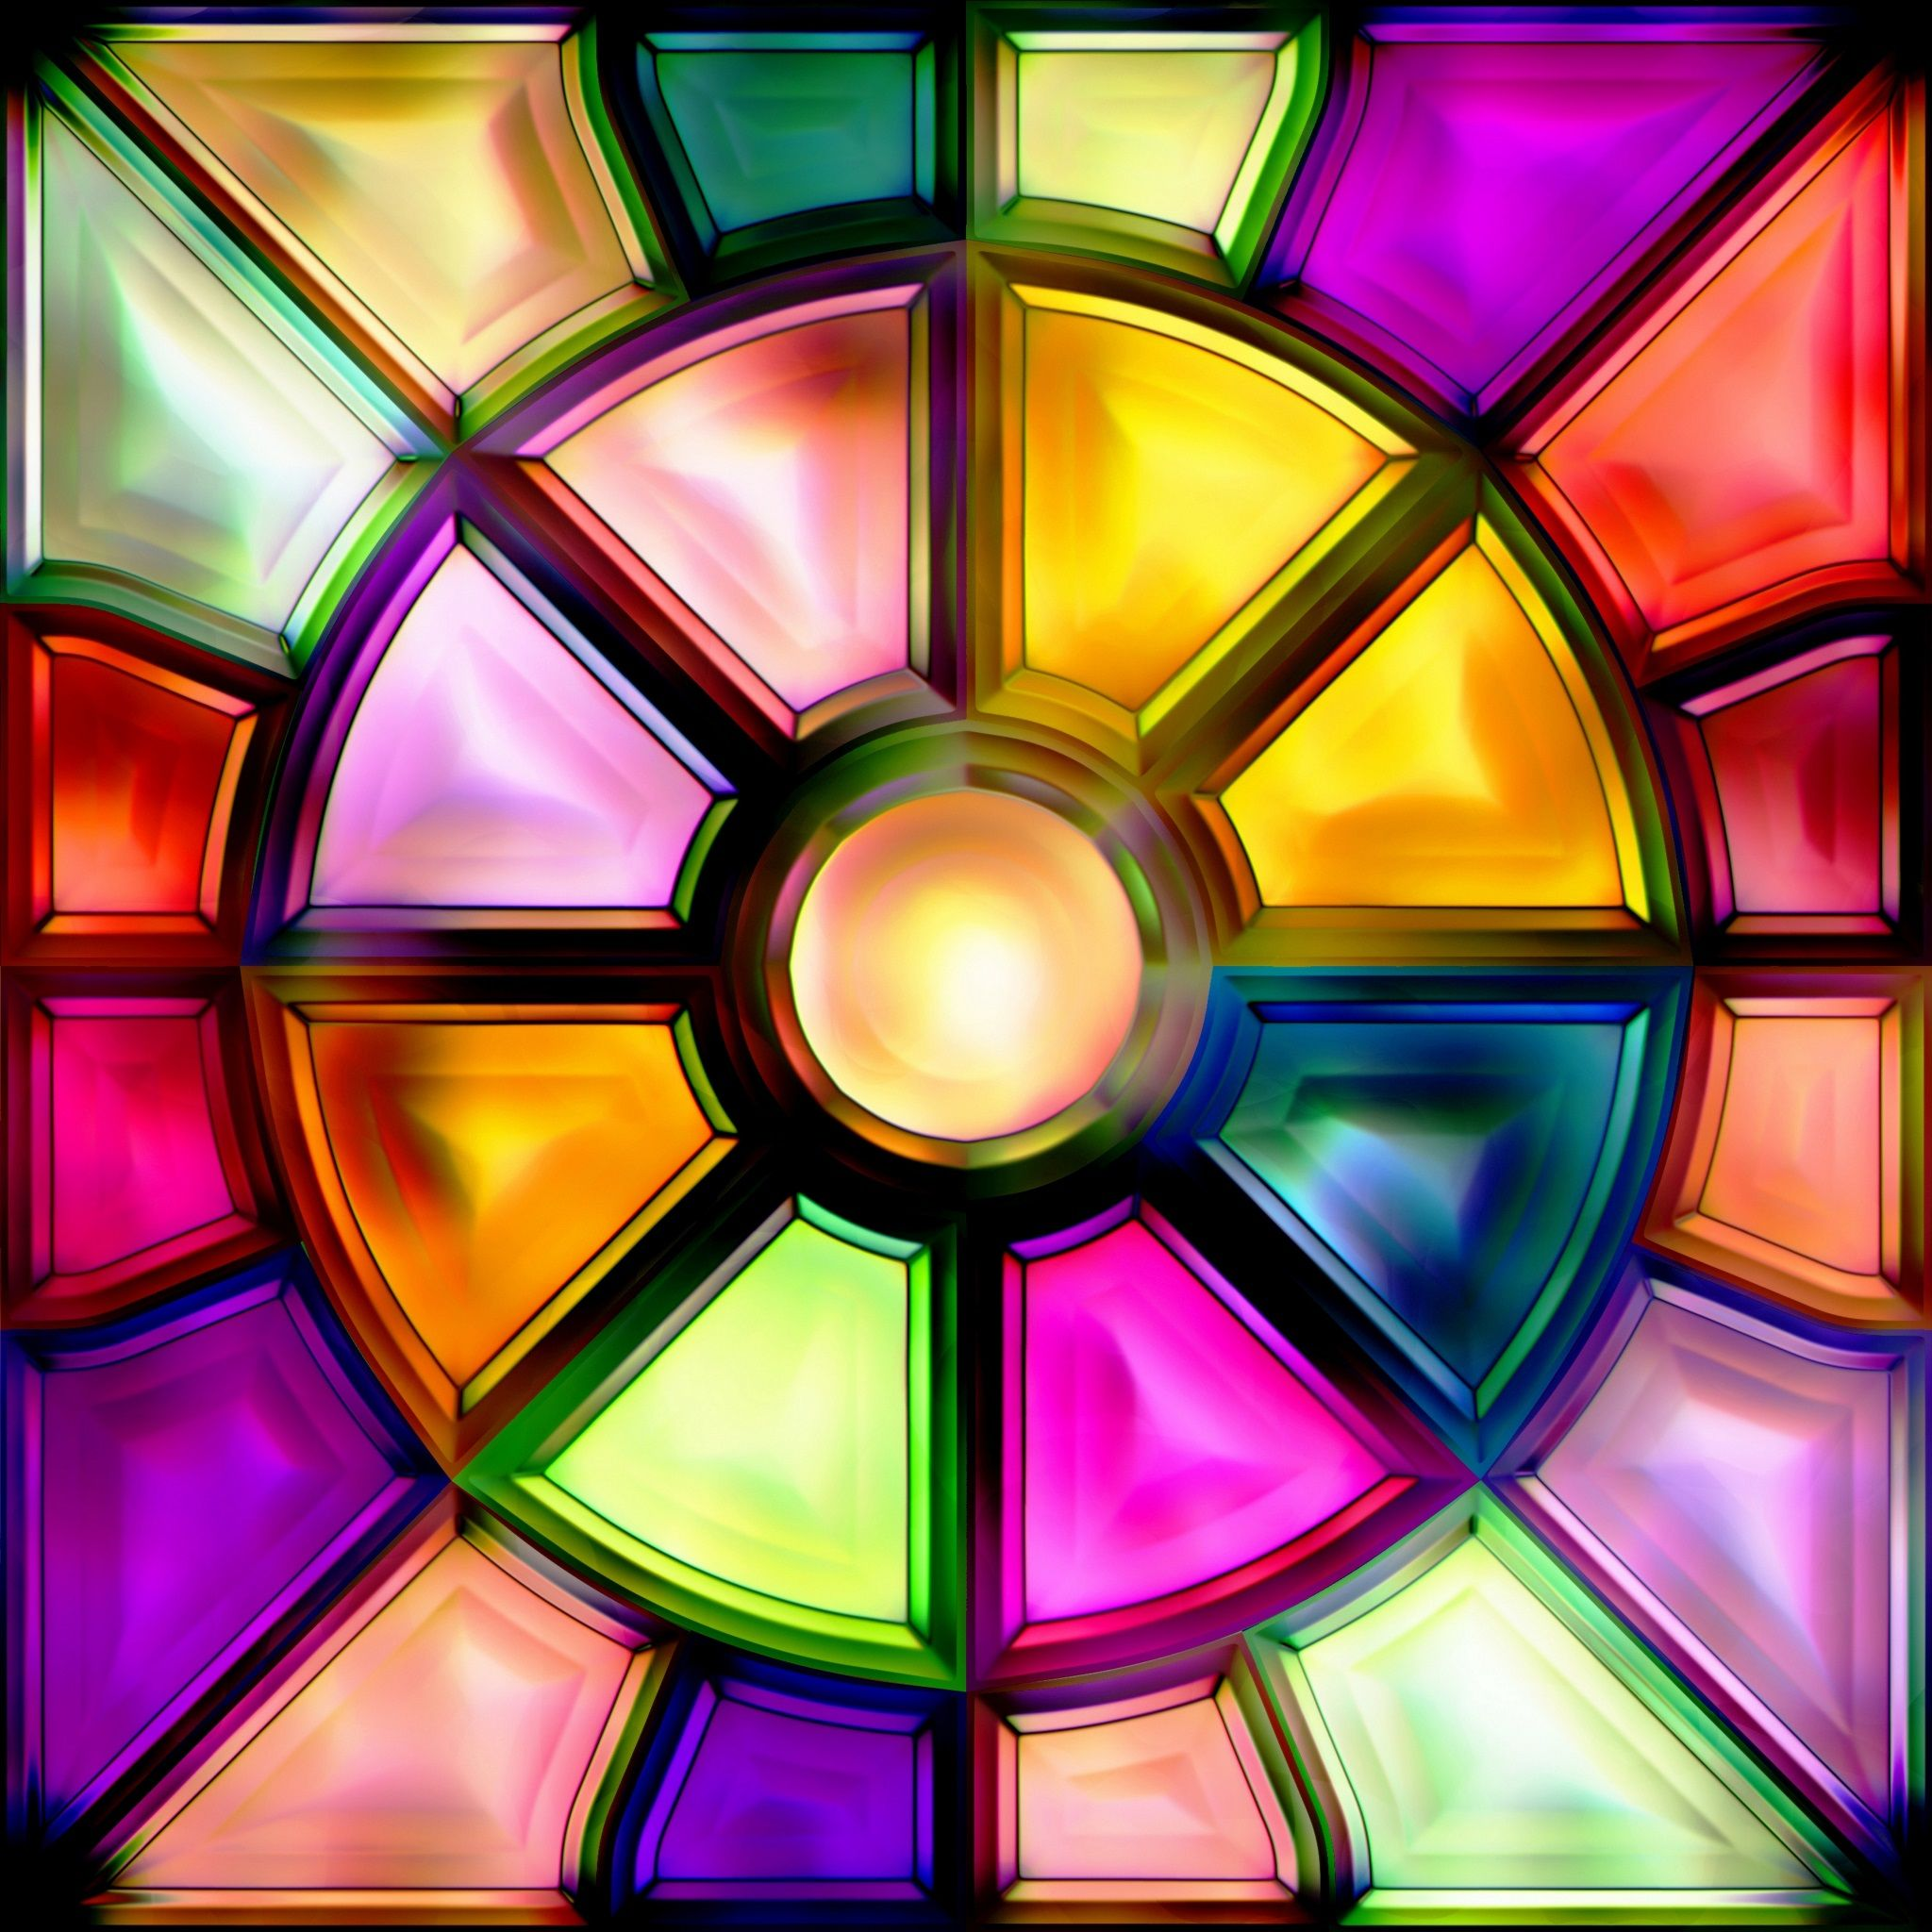 Colorful Stained Glass Tap To See More Beautiful Colorful Abstract Wallpapers Mobile9 Abstract Rainbow Wallpaper Abstract Wallpaper